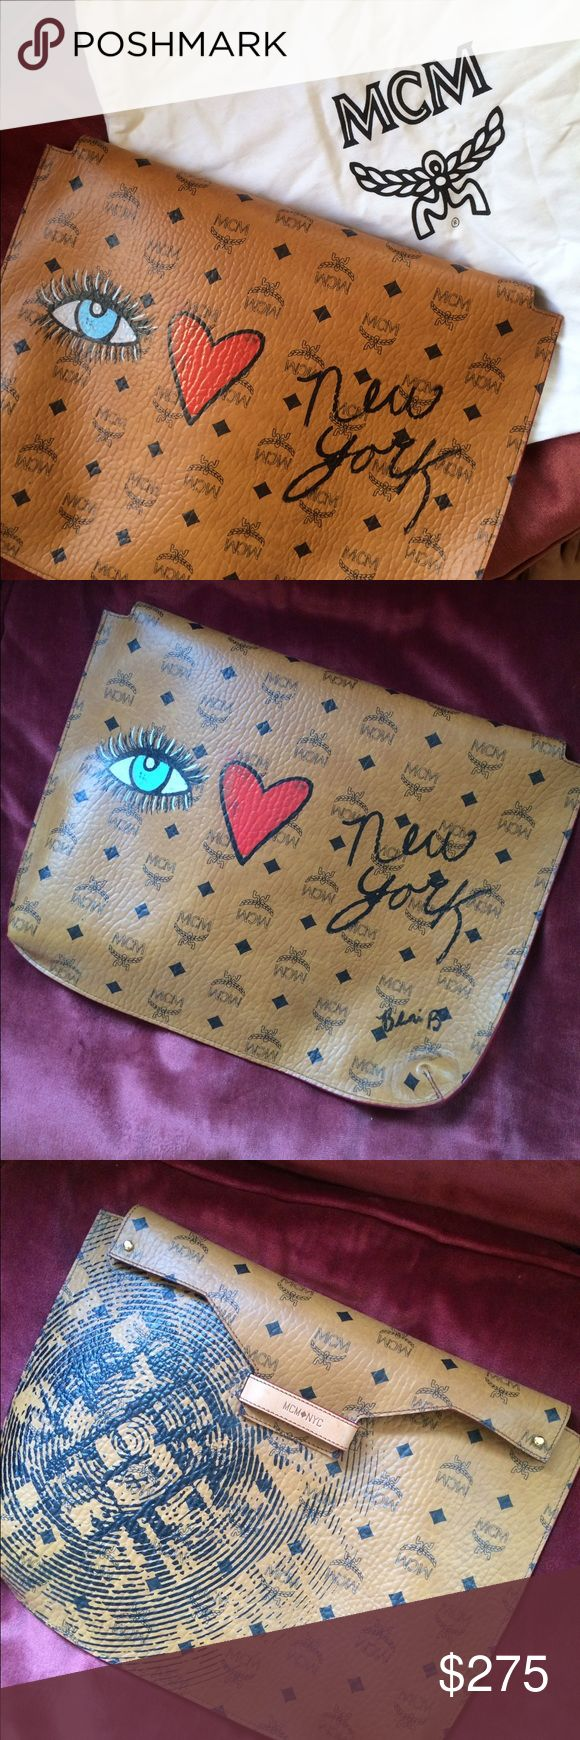 Custom MCM Clutch Custom clutch or laptop case by MCM. Hand painted at a Vogue event by fashion illustrator Blair Breitenstein (@blairz). Comes with the original dust bag. MCM Bags Clutches & Wristlets